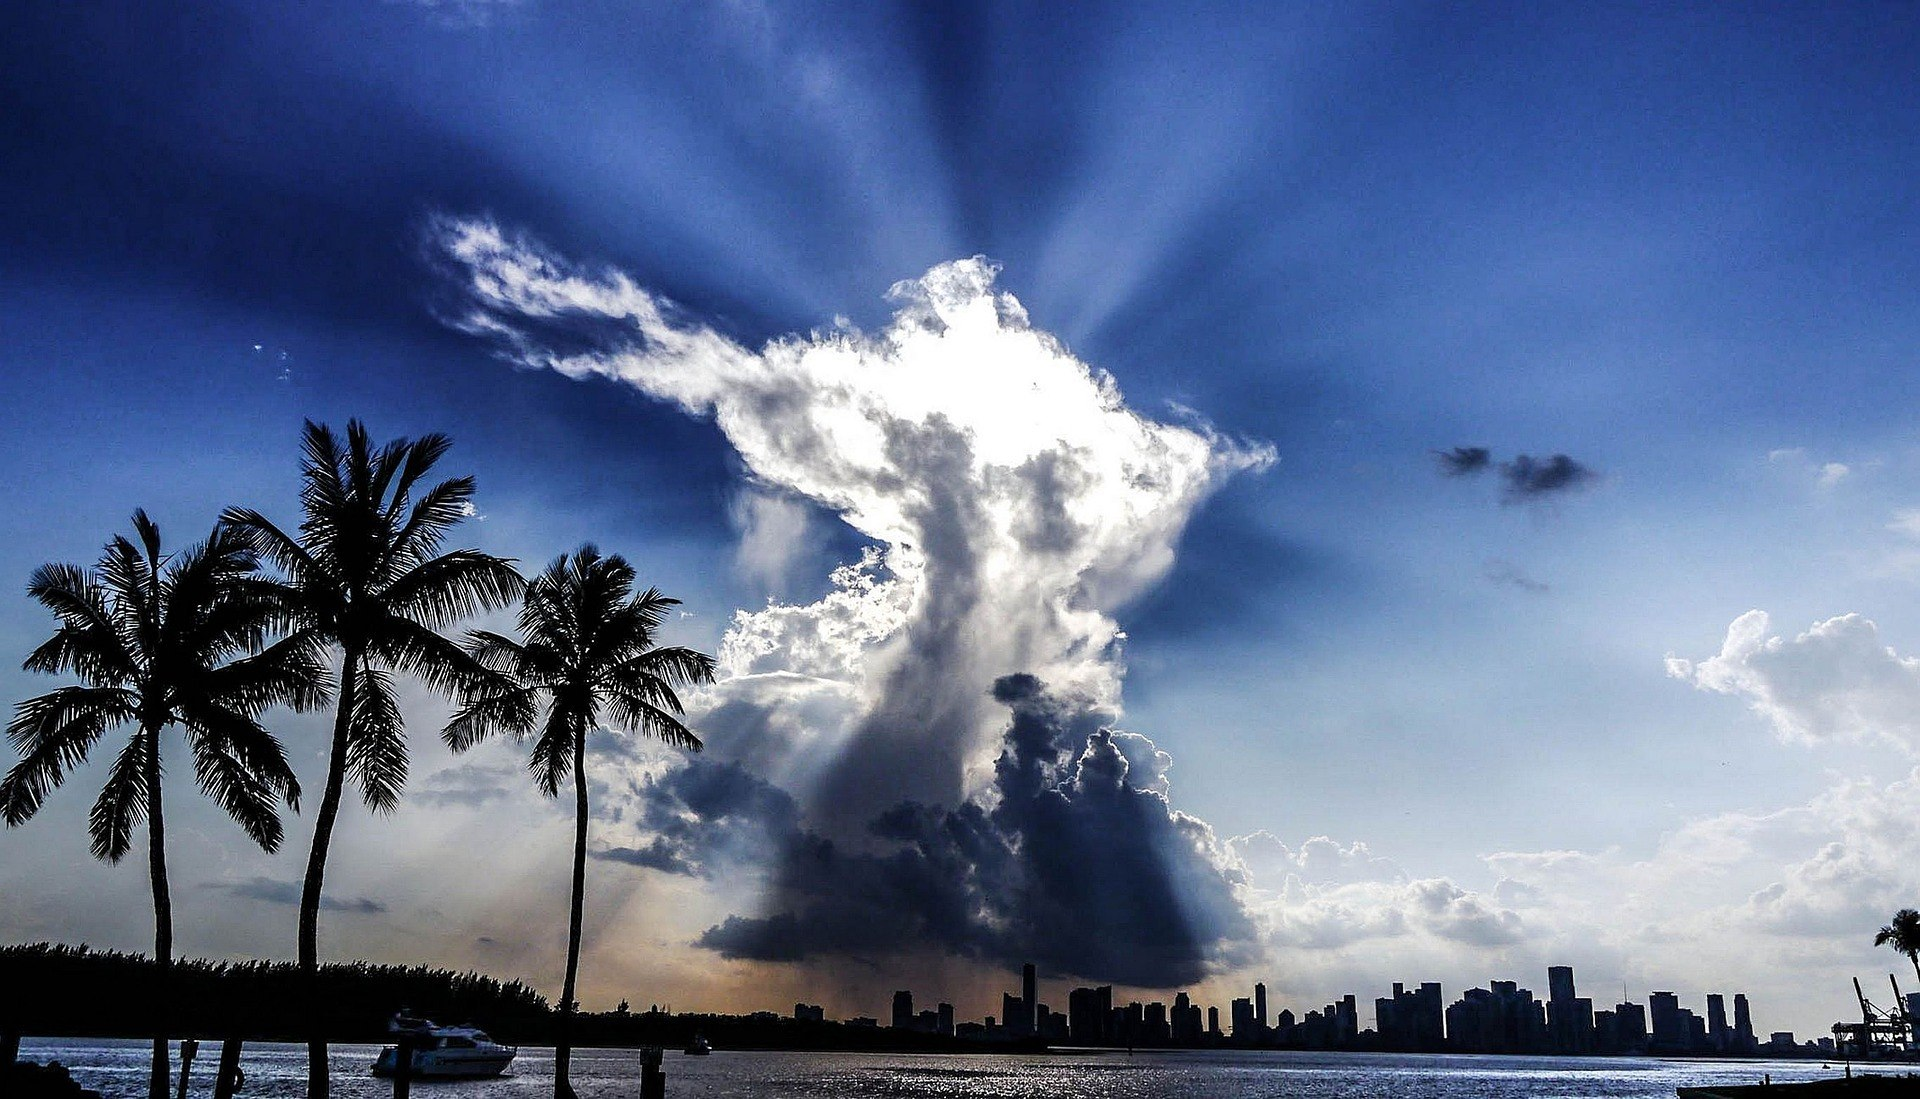 Clouds over Miami